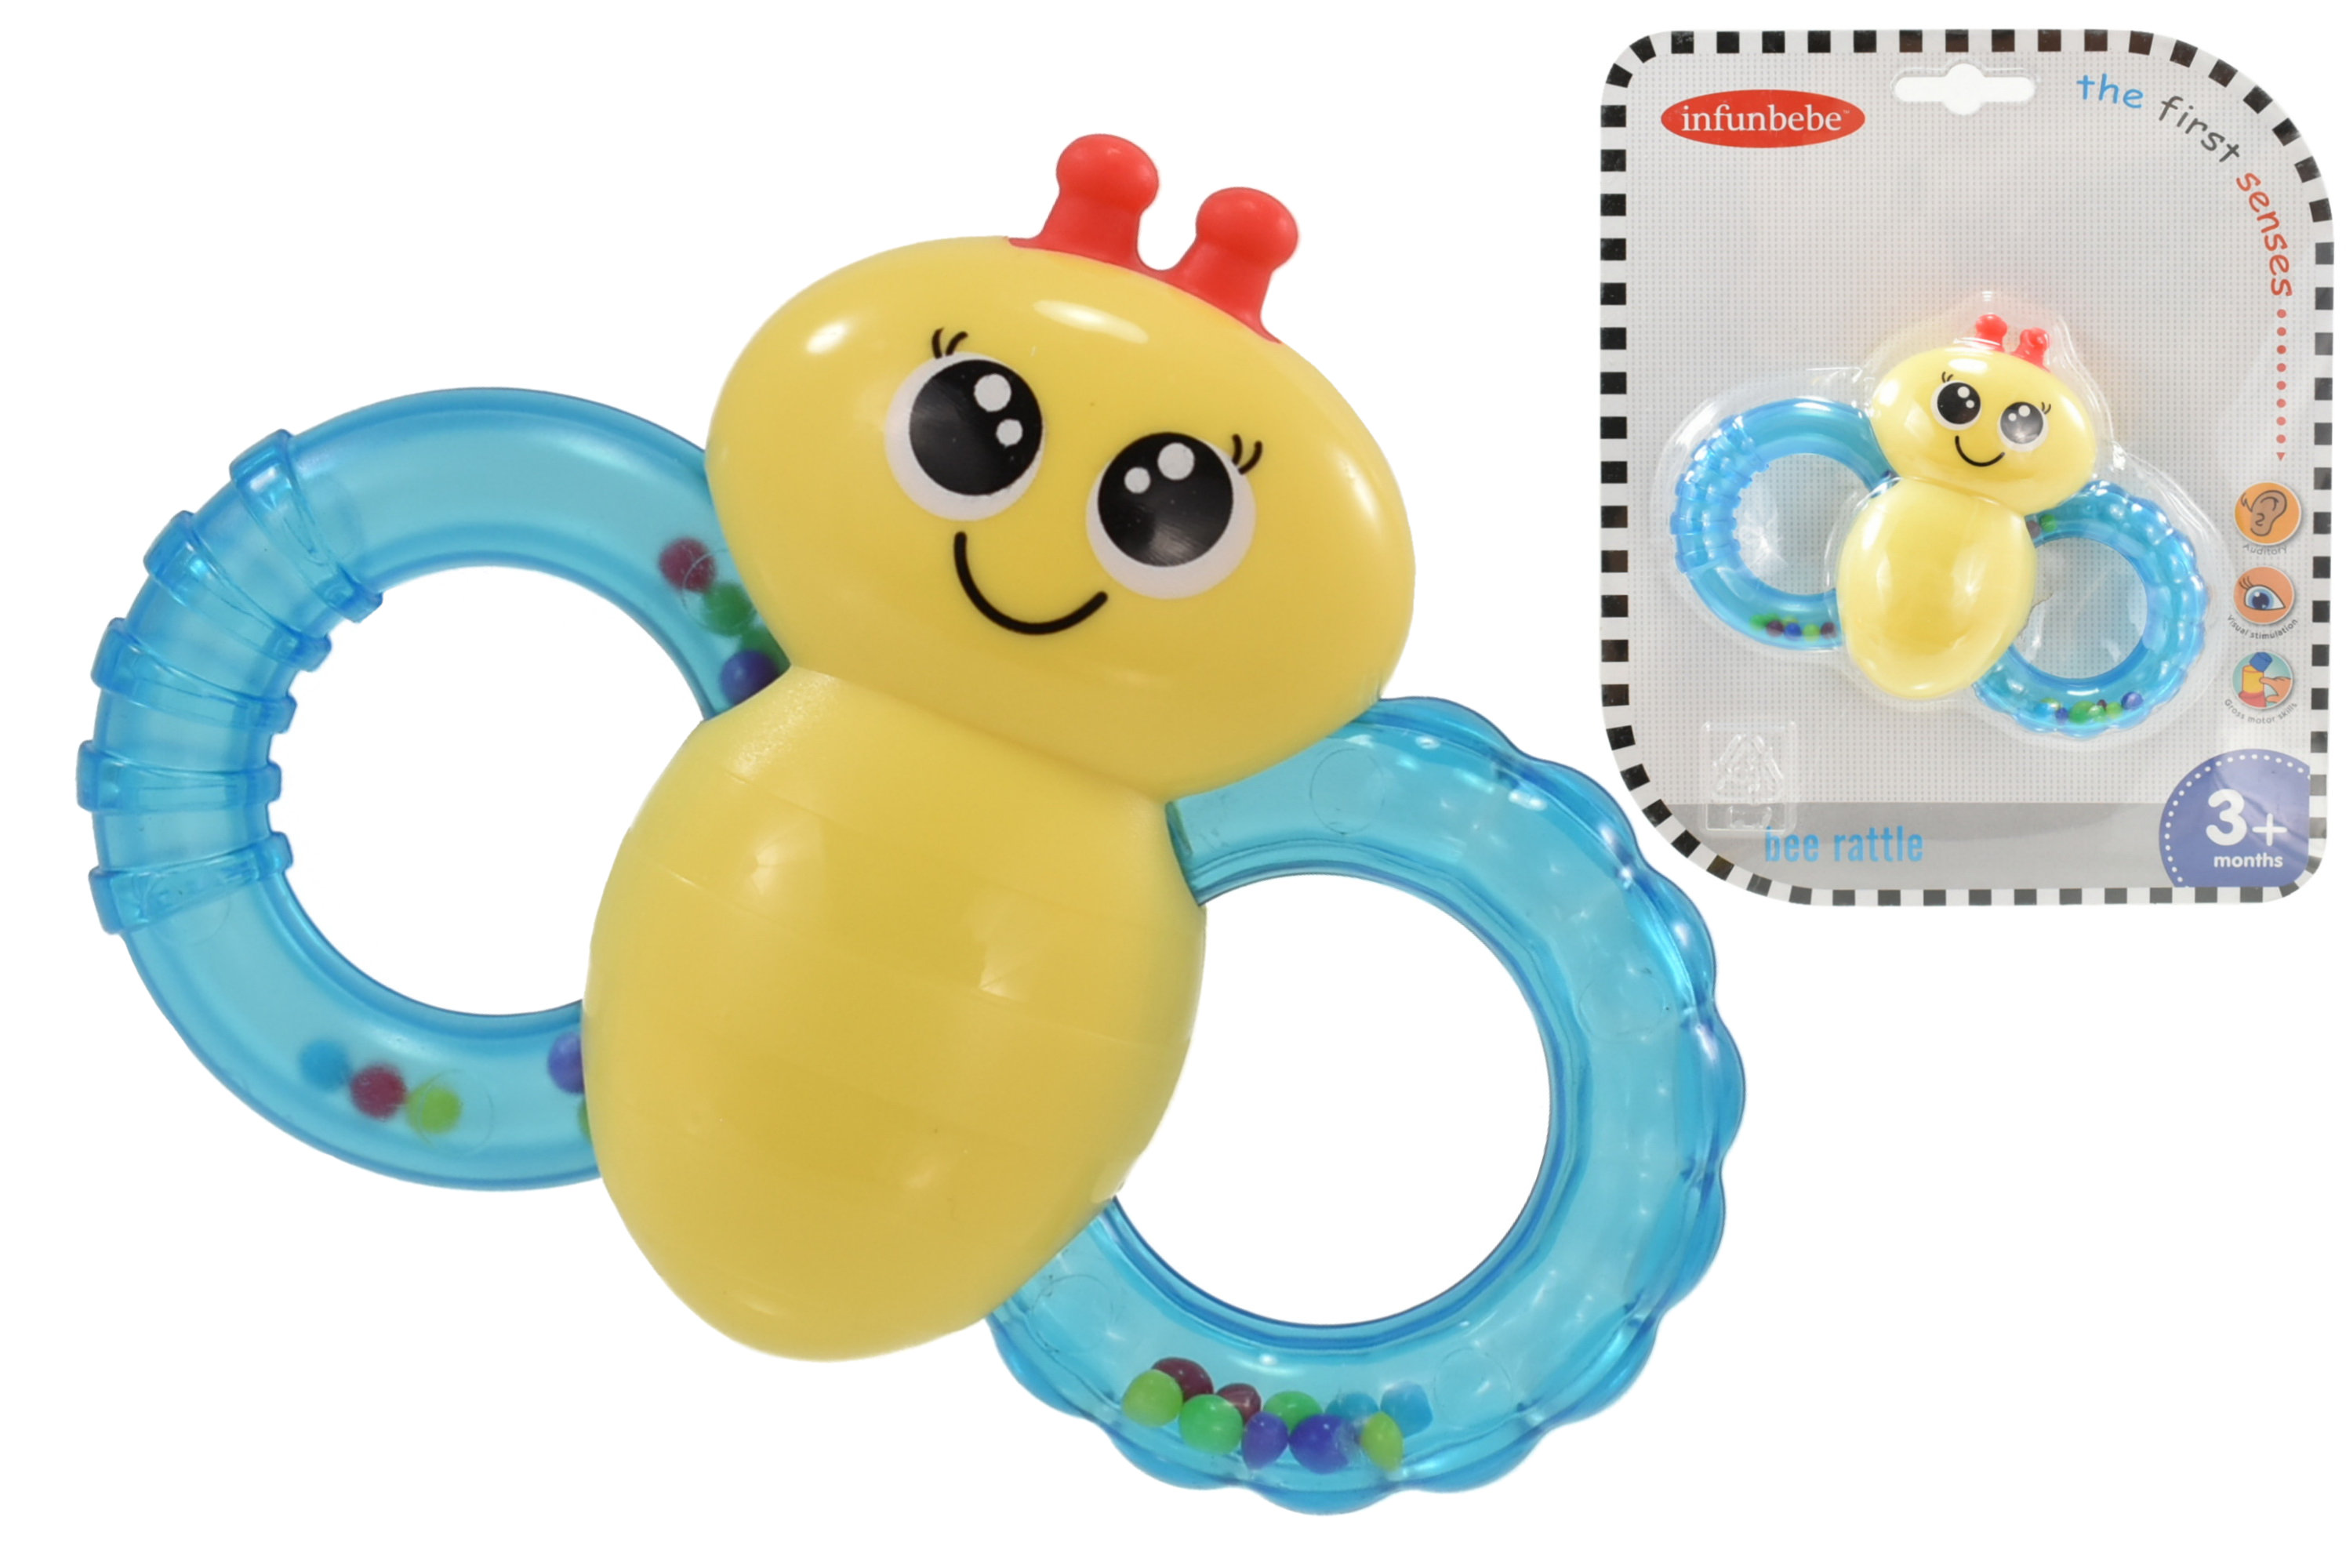 Bee Rattle - Blistercard - 3m+